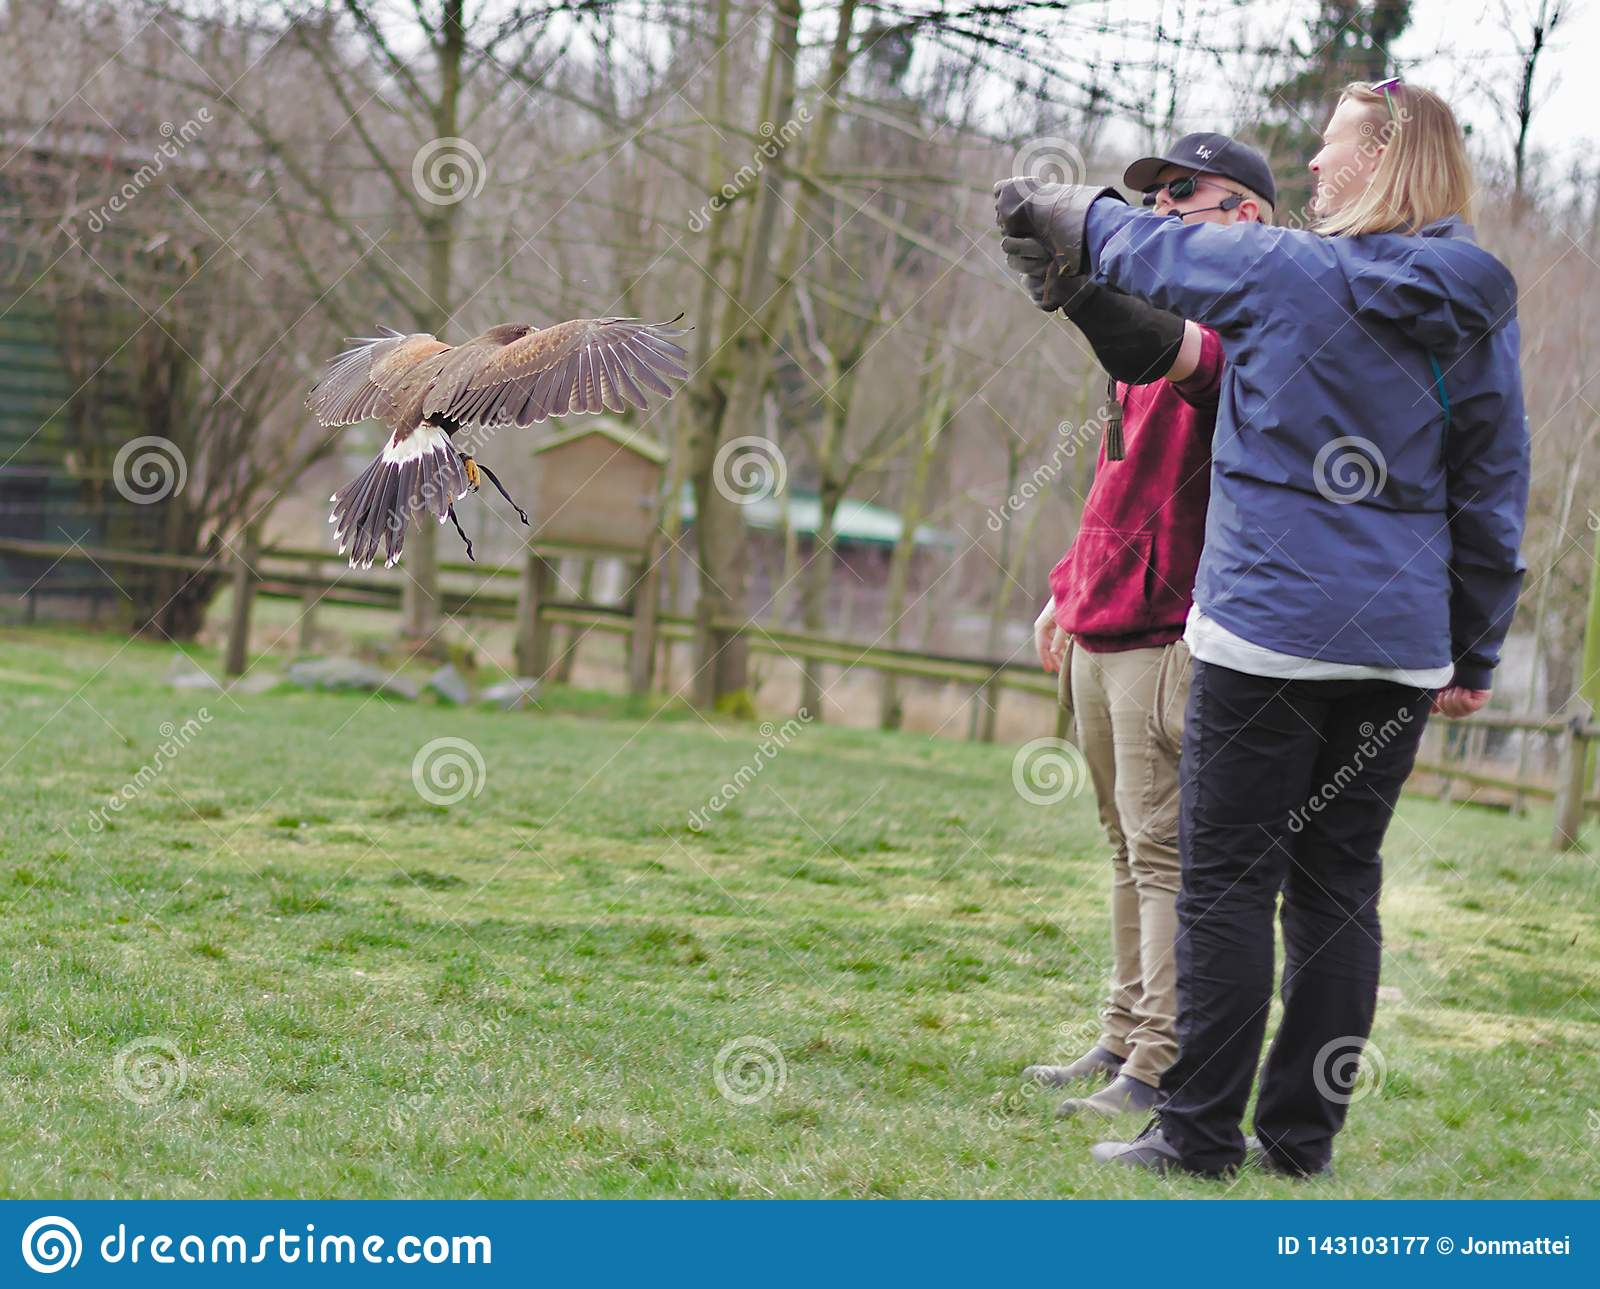 Aldergrove, British Columbia. March 25, 2019 - An Owl Standing on the trainer`s hand in the bird show